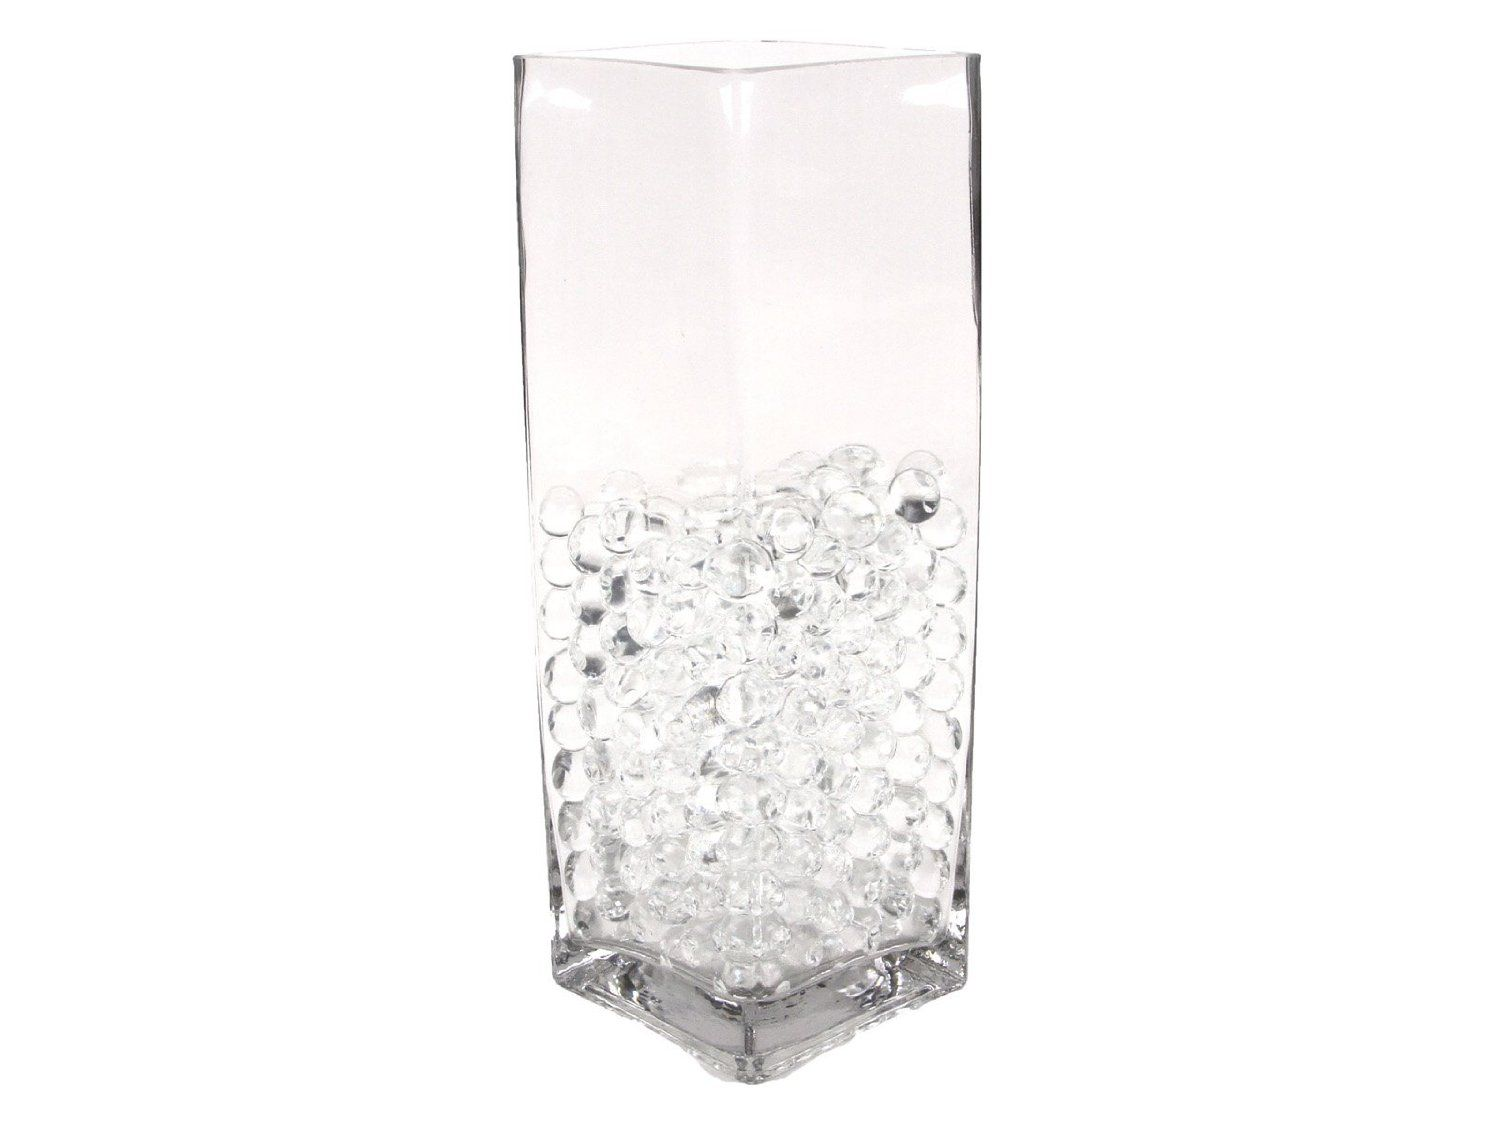 Amazon Com Water Pearls Clear Centerpiece Wedding Tower Vase Filler Makes 6 Gallons 8 Oz Pack Decorative Vases Arts Cr Vase Fillers Wedding Vases Water Beads